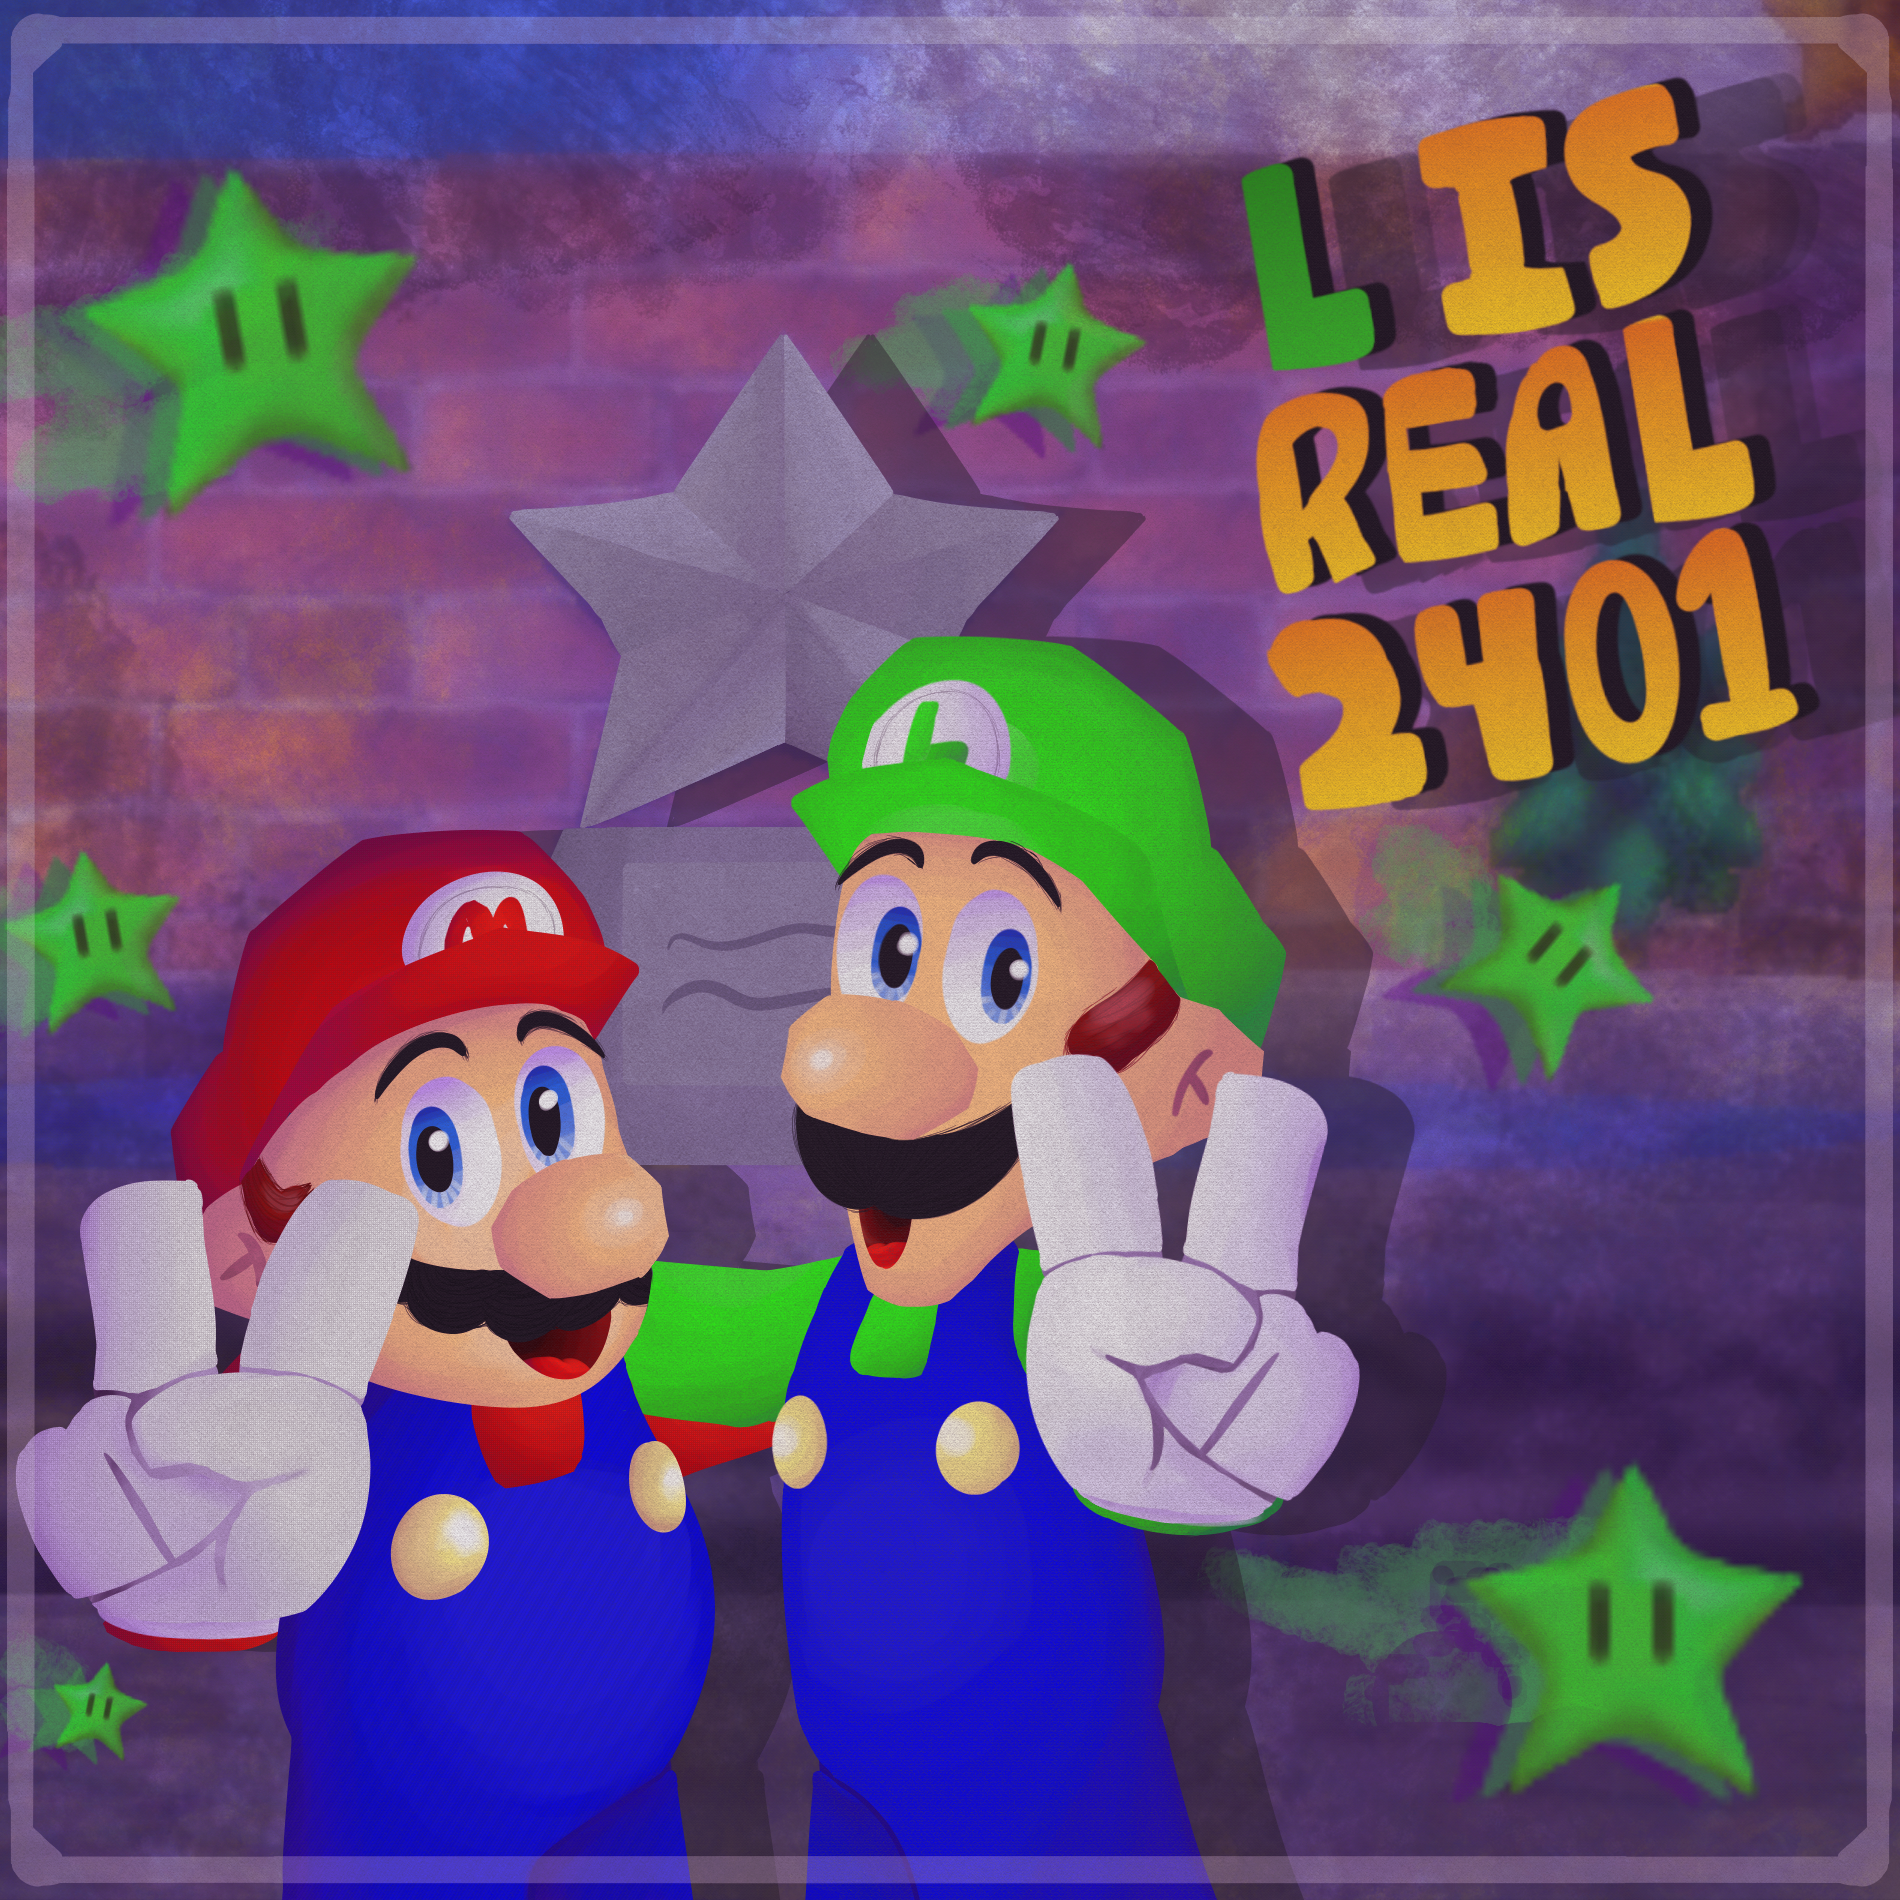 L is Real 2401 (2021 Remake)